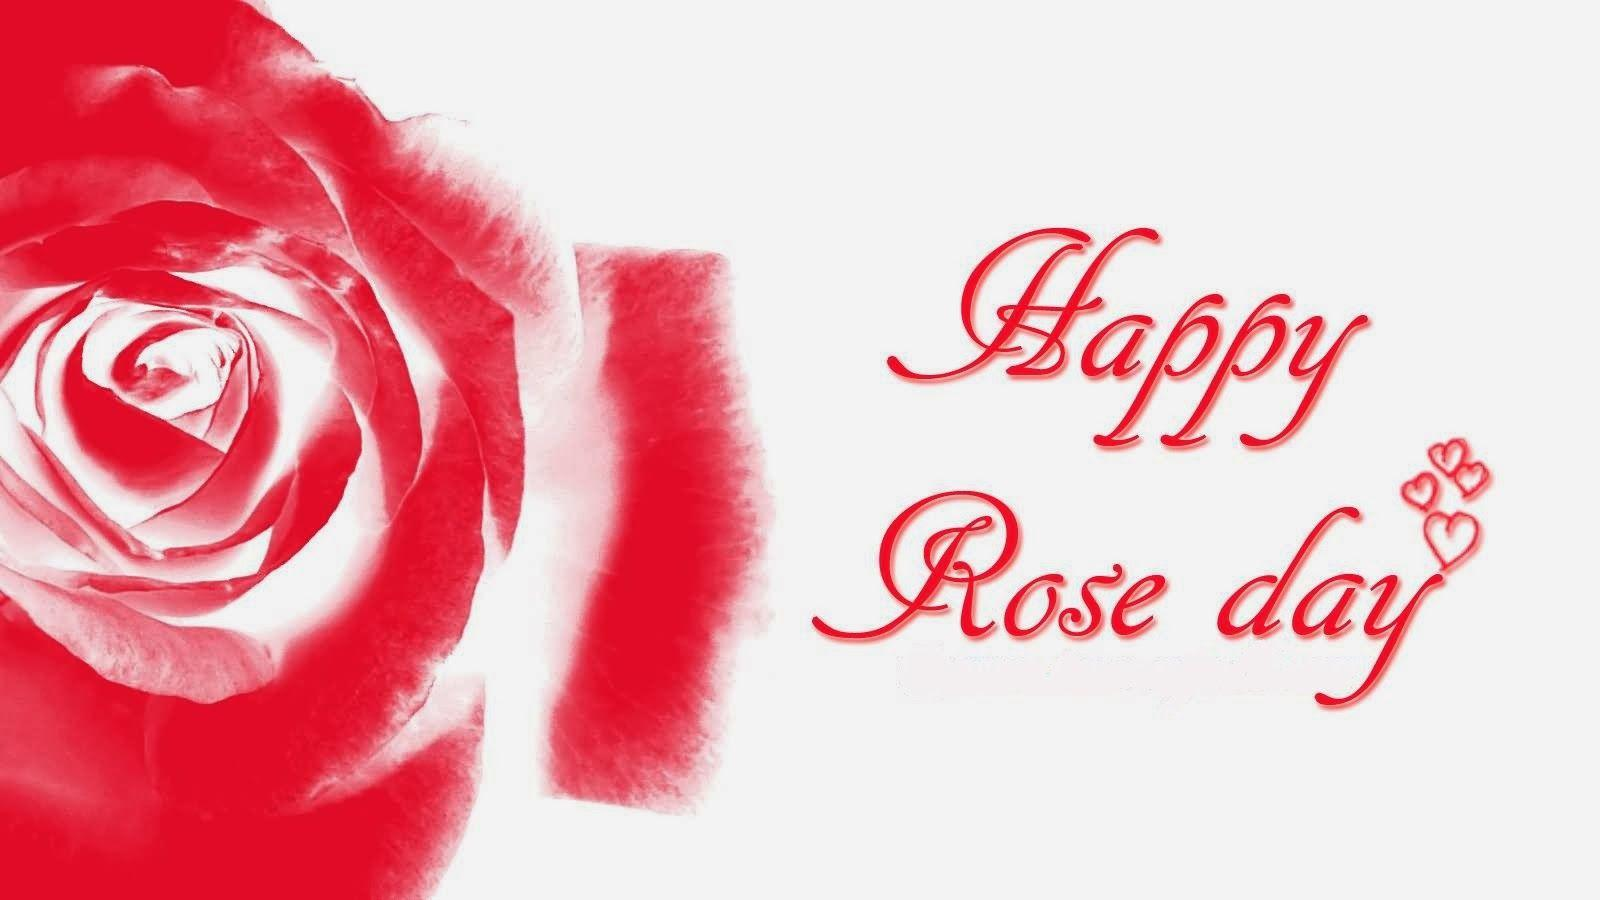 Rose Day - Valentine Day - 7 February   IMAGES, GIF, ANIMATED GIF, WALLPAPER, STICKER FOR WHATSAPP & FACEBOOK